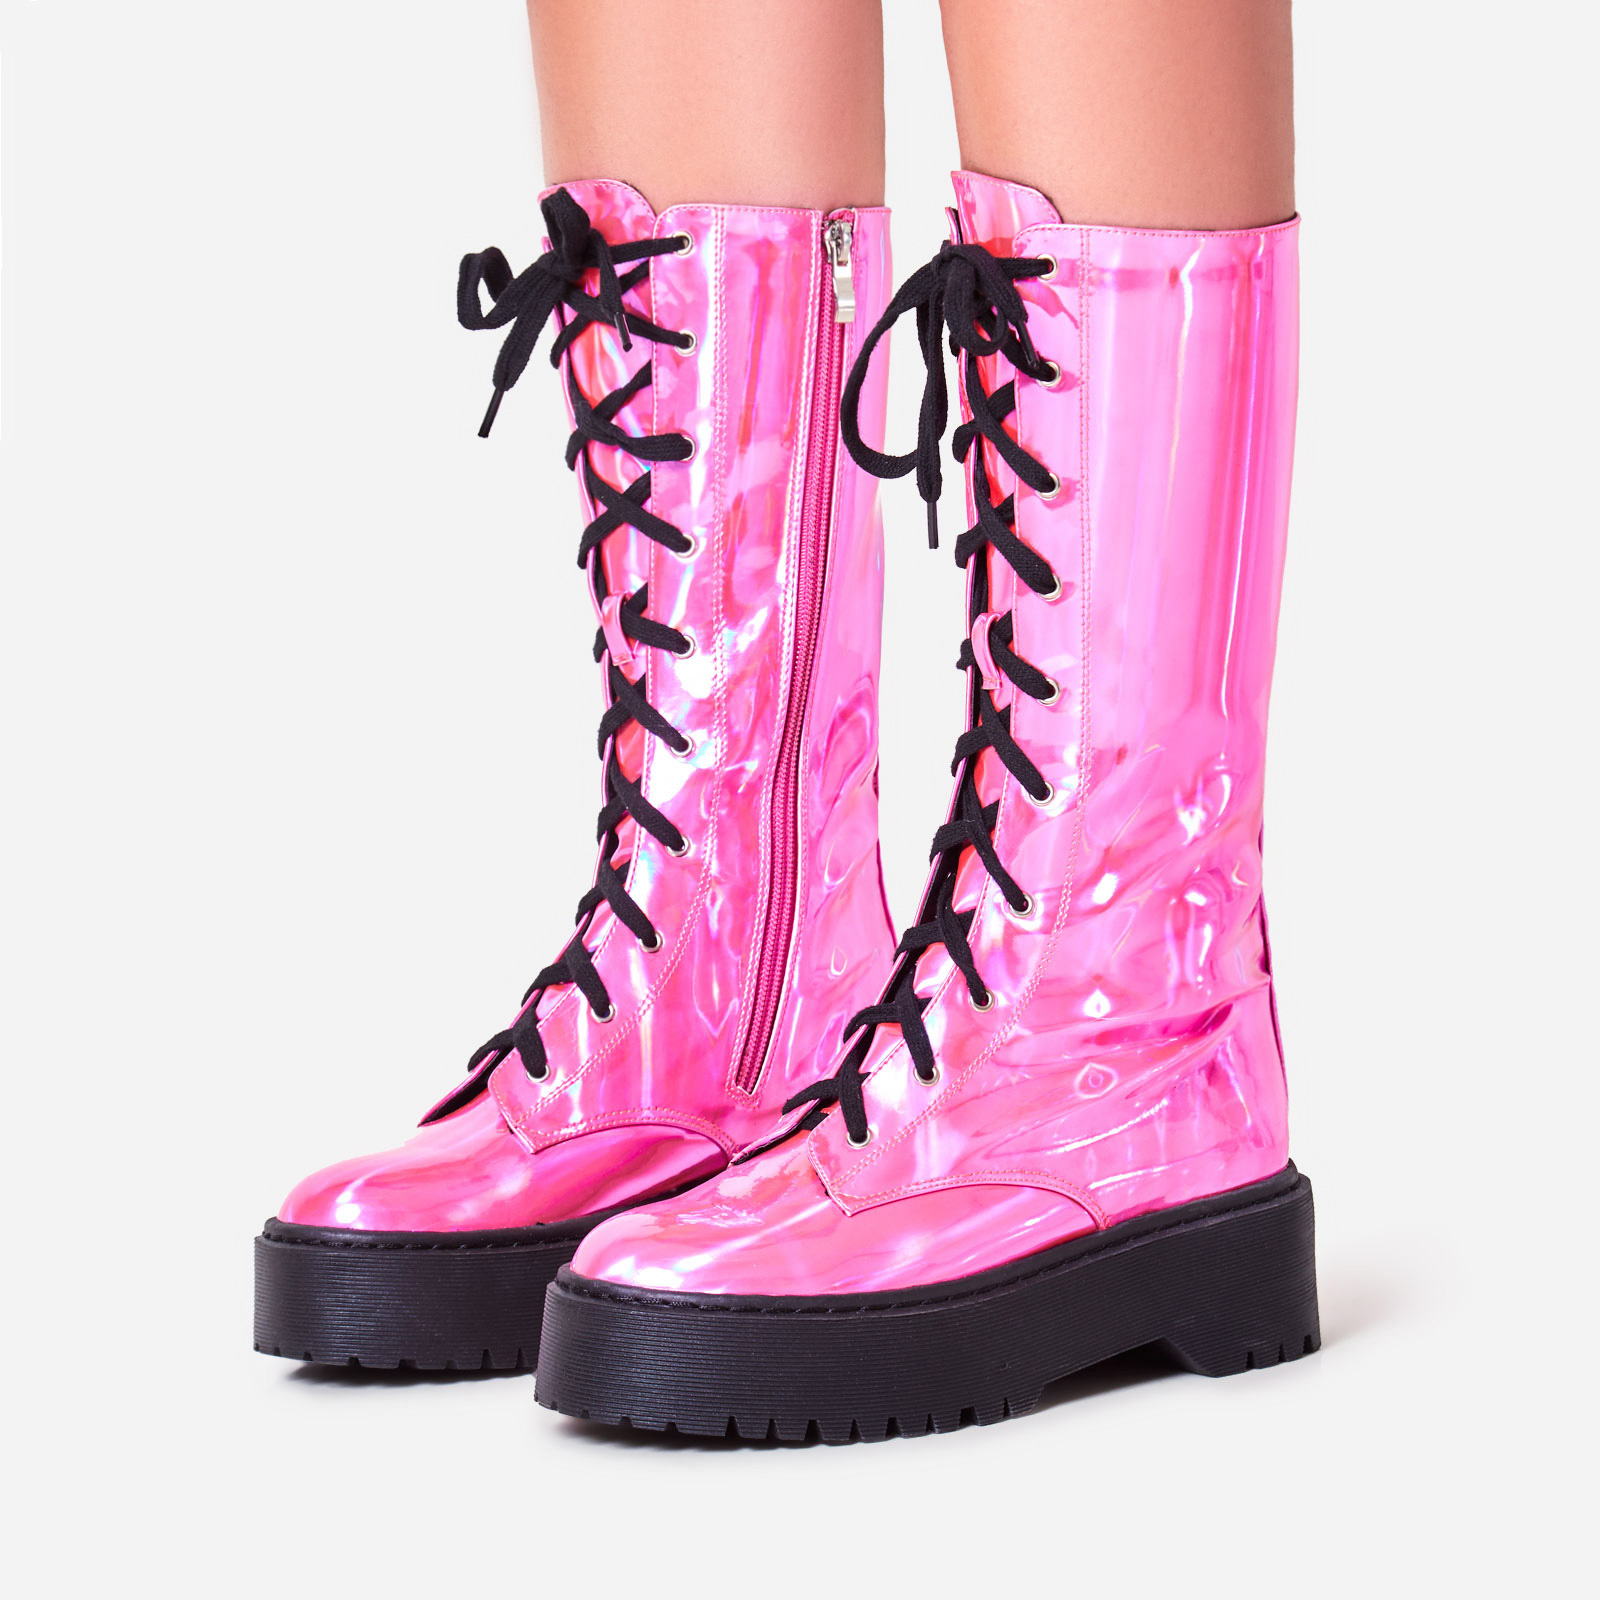 Tribeca Knee High Lace Up Ankle Biker Boot In Pink Holographic Faux Leather